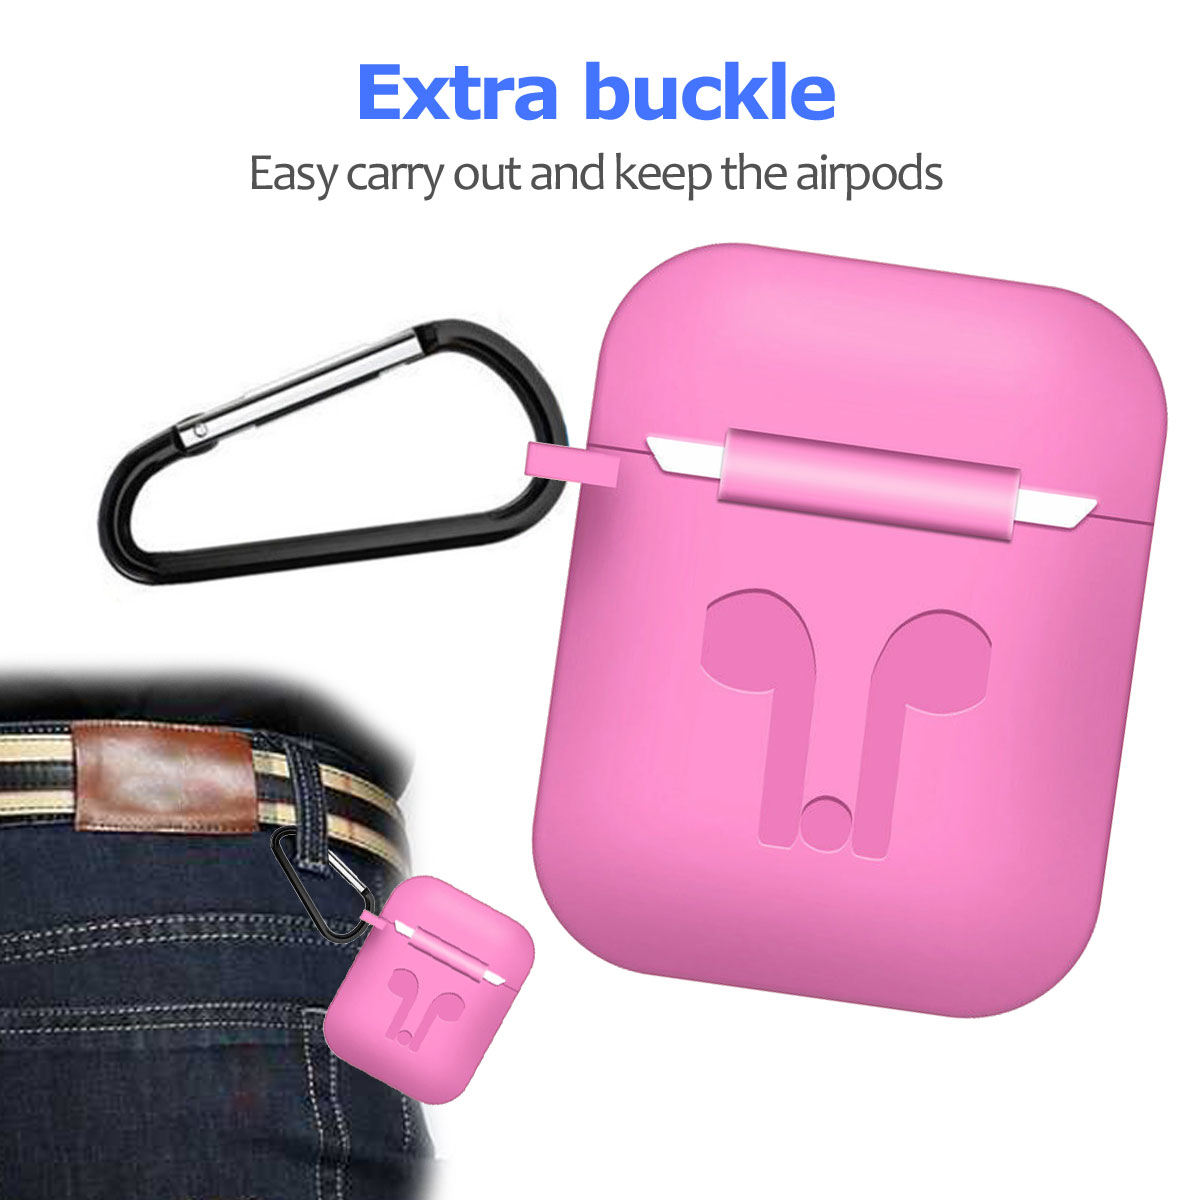 Silicone-Ruggged-Case-Cover-Earbuds-For-Apple-AirPods-2nd-Gen-Accessories-2019 thumbnail 50